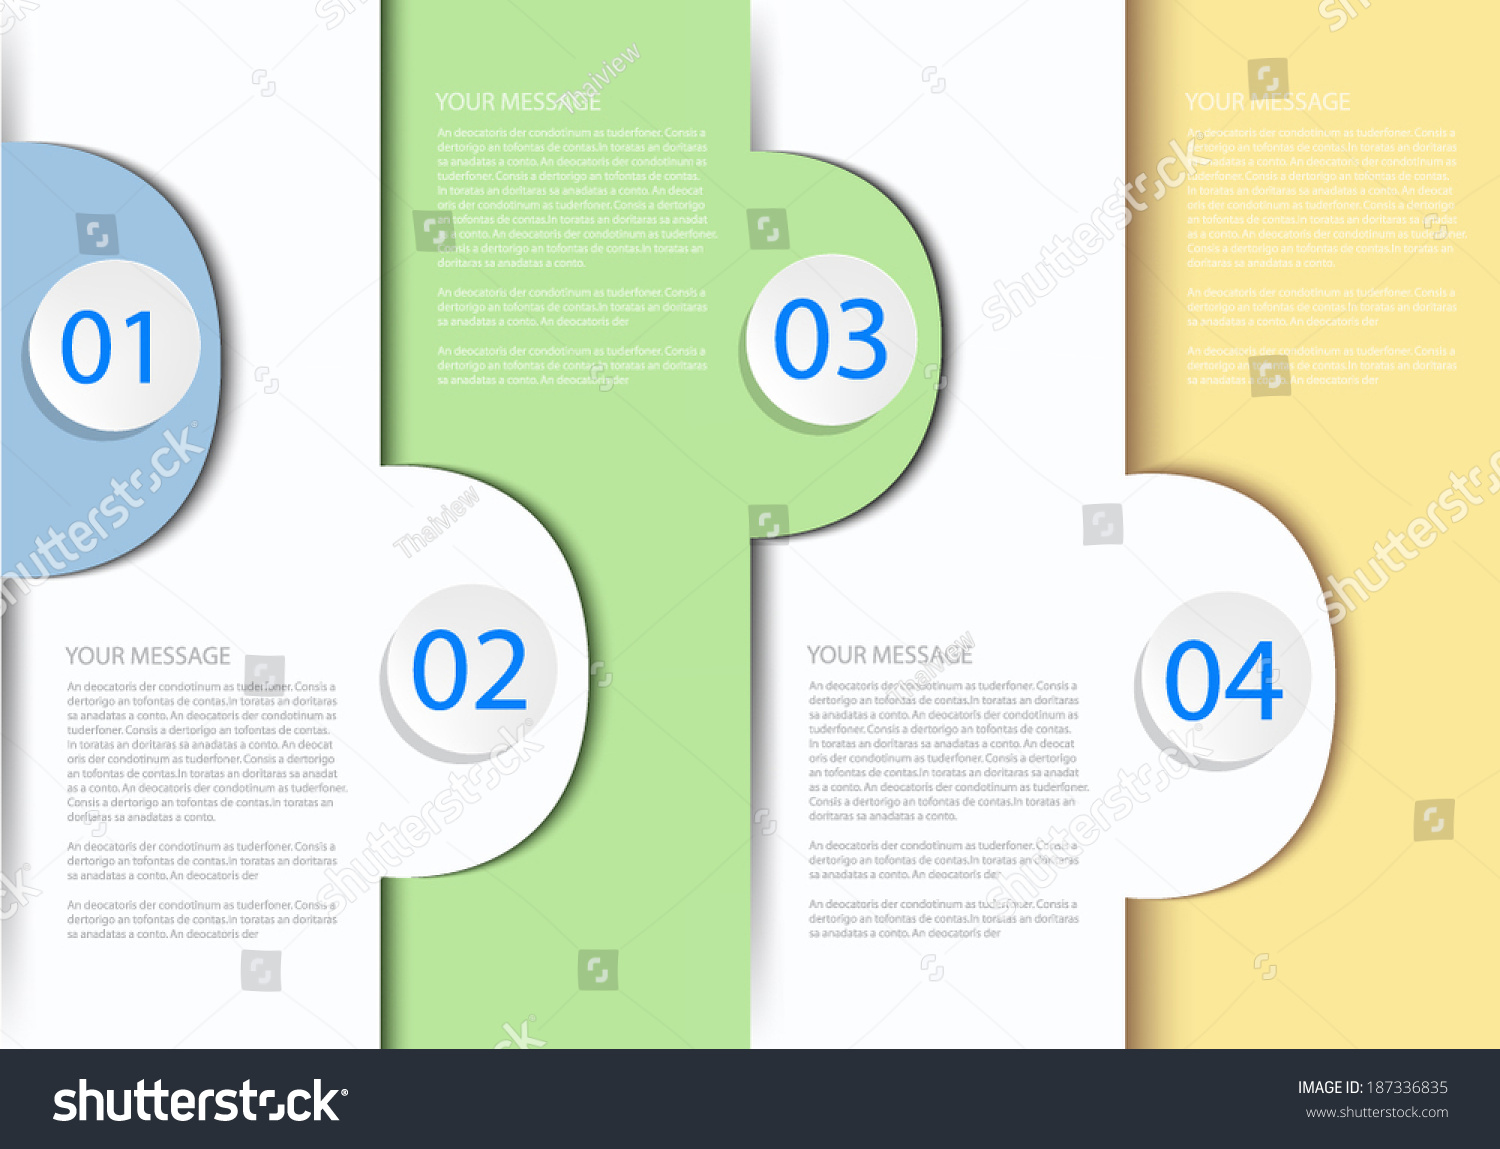 blue paper background abstract infographic for work plan on white background for text and message design